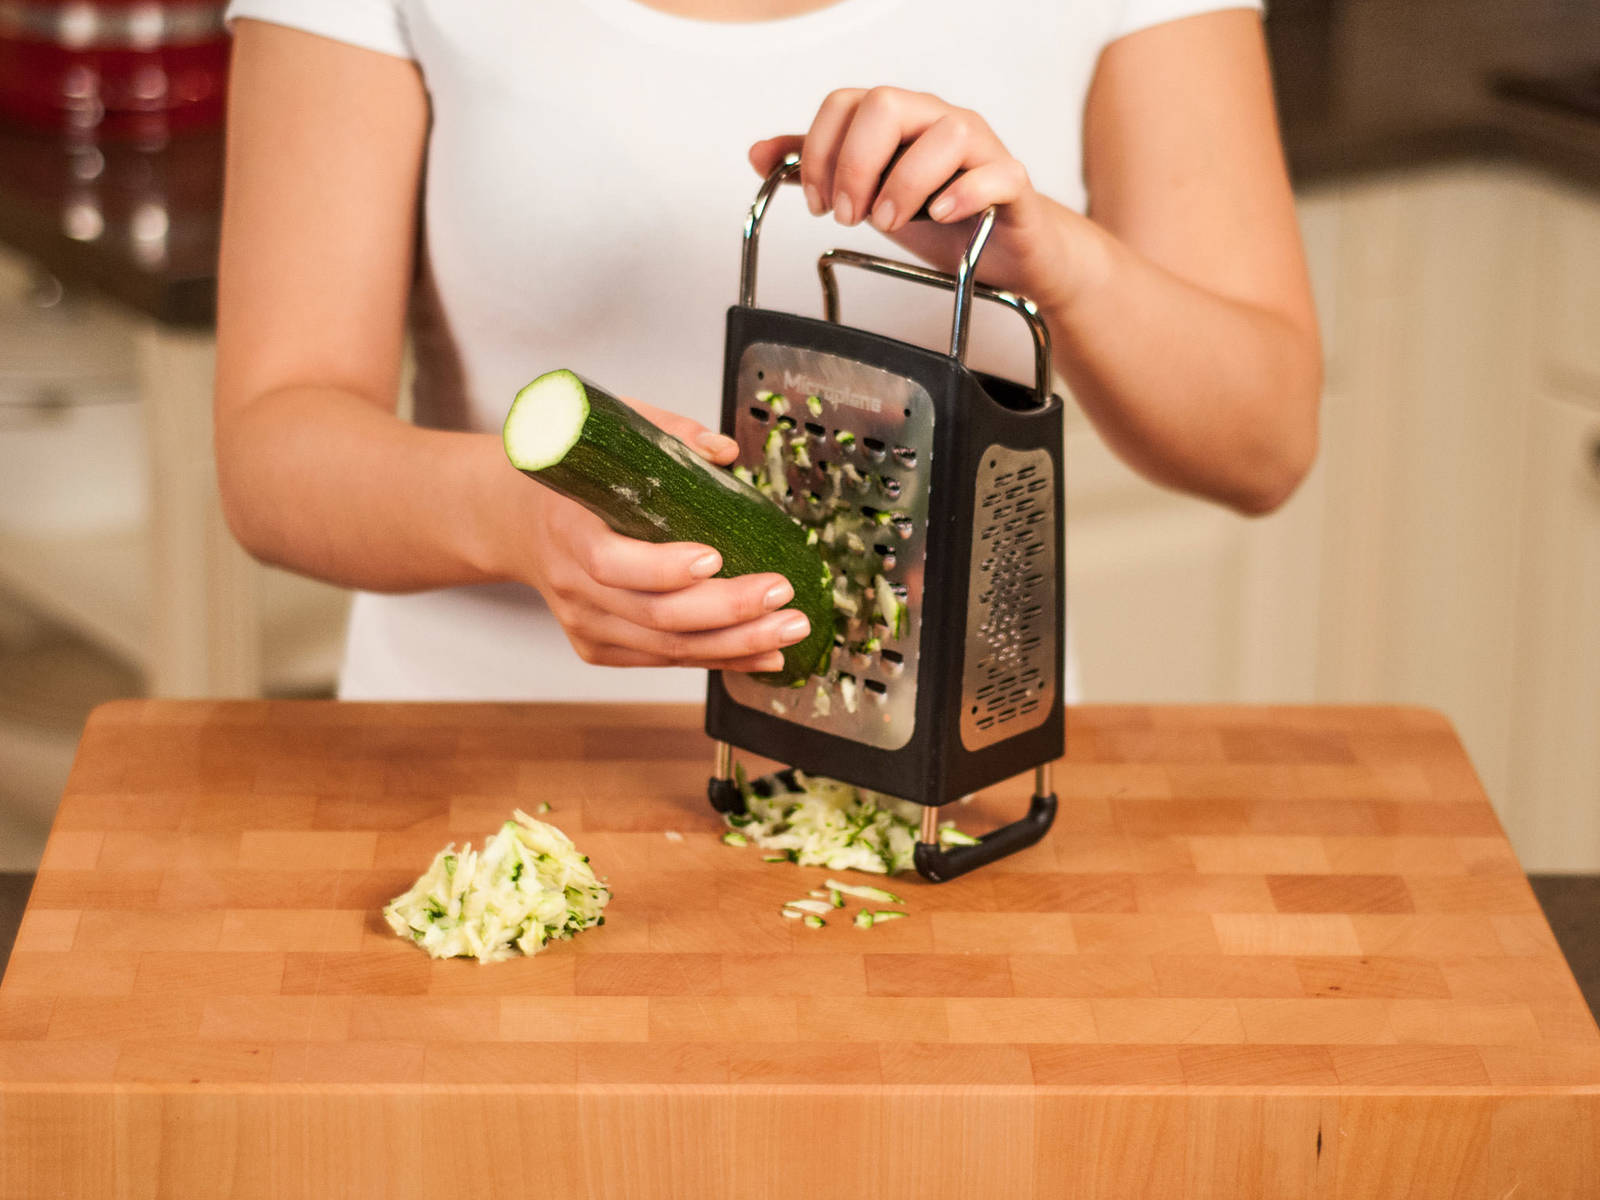 Preheat oven to 180°C/355°F. Cut off ends of zucchini and roughly grate using the large holes of a box grater.